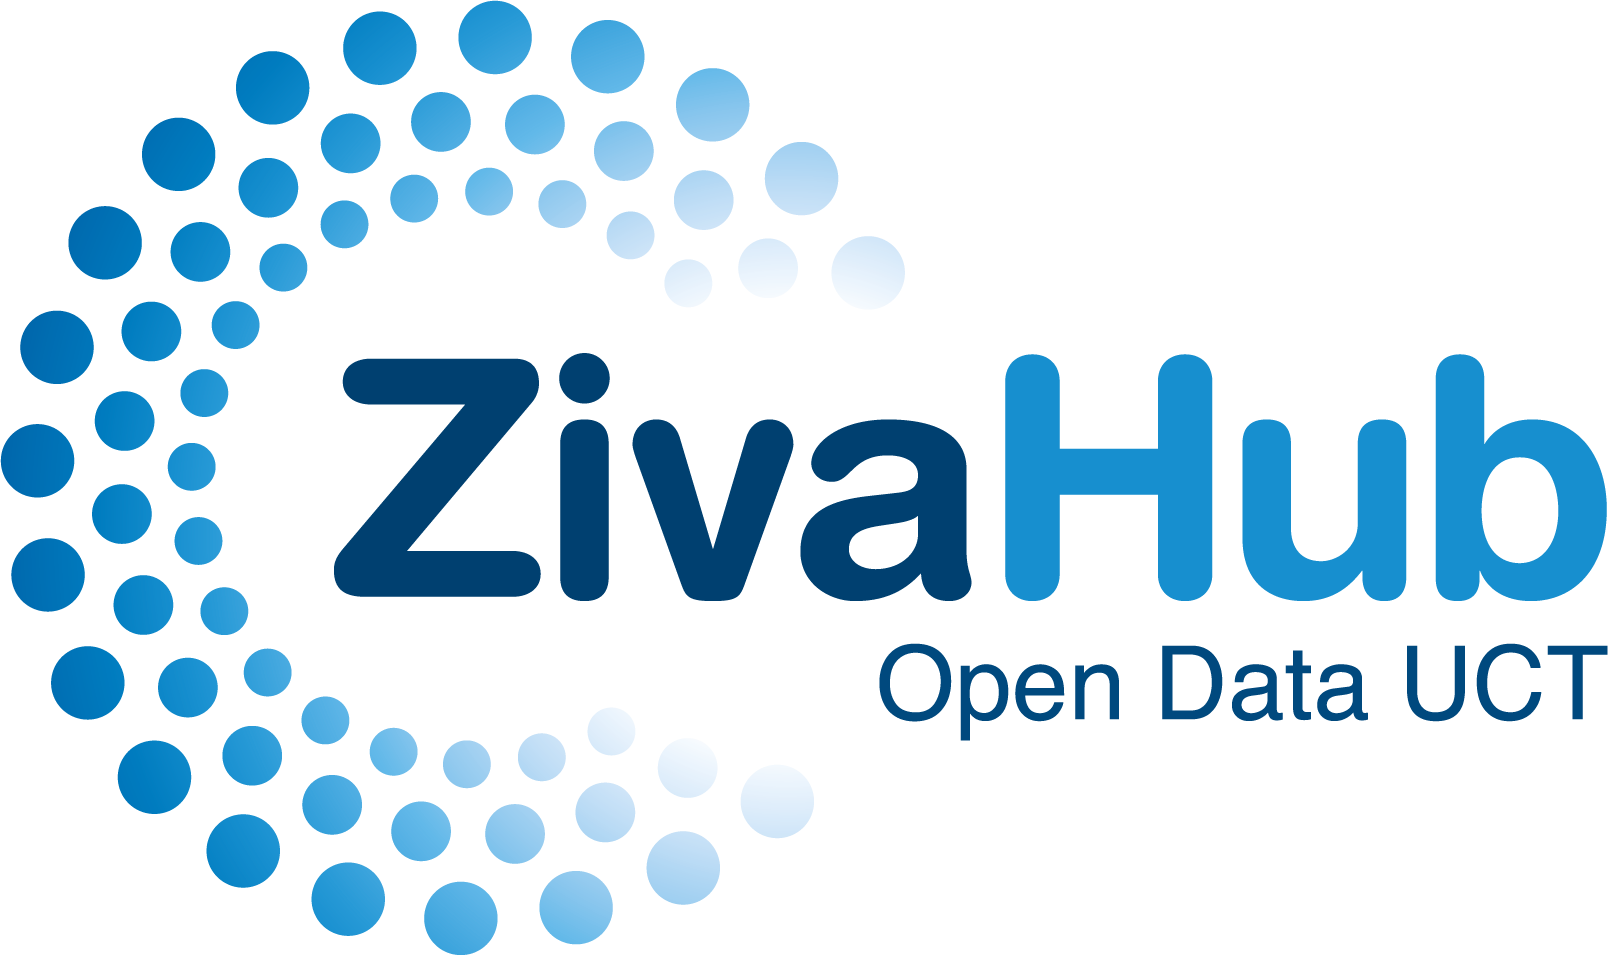 ZivaHub UCT's Institutional Data Repository